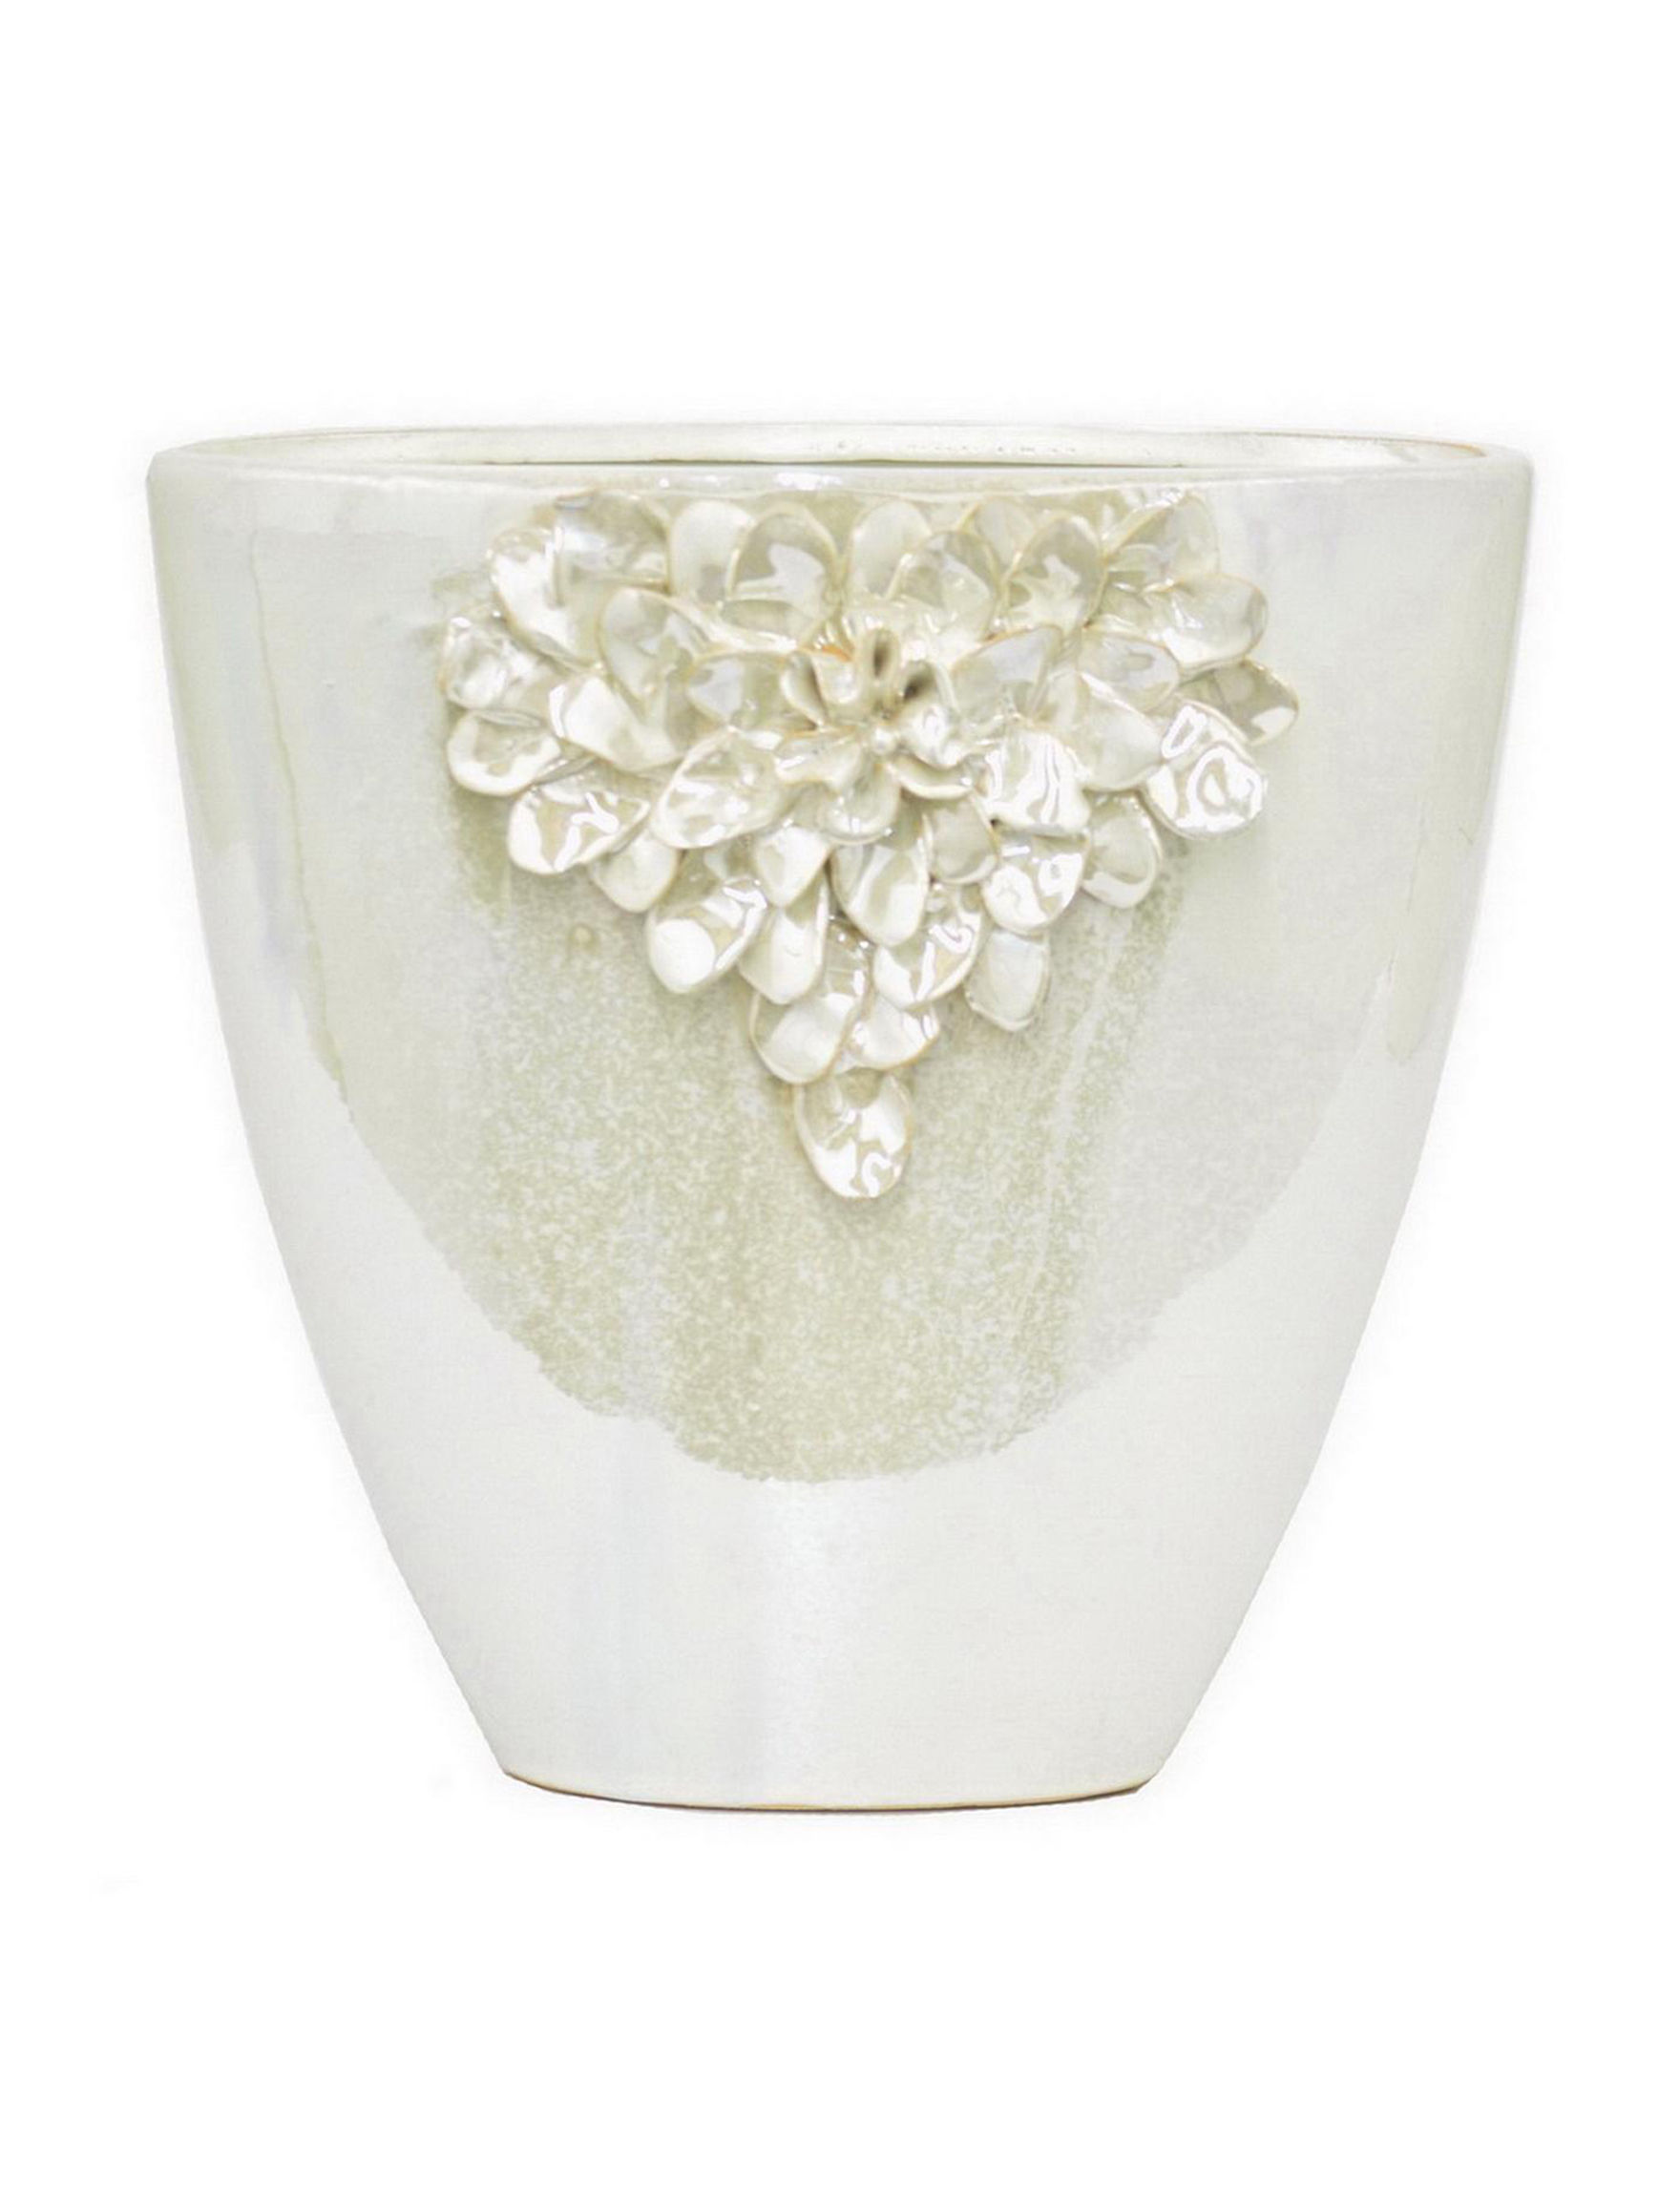 Three Hands  Vases & Decorative Bowls Home Accents